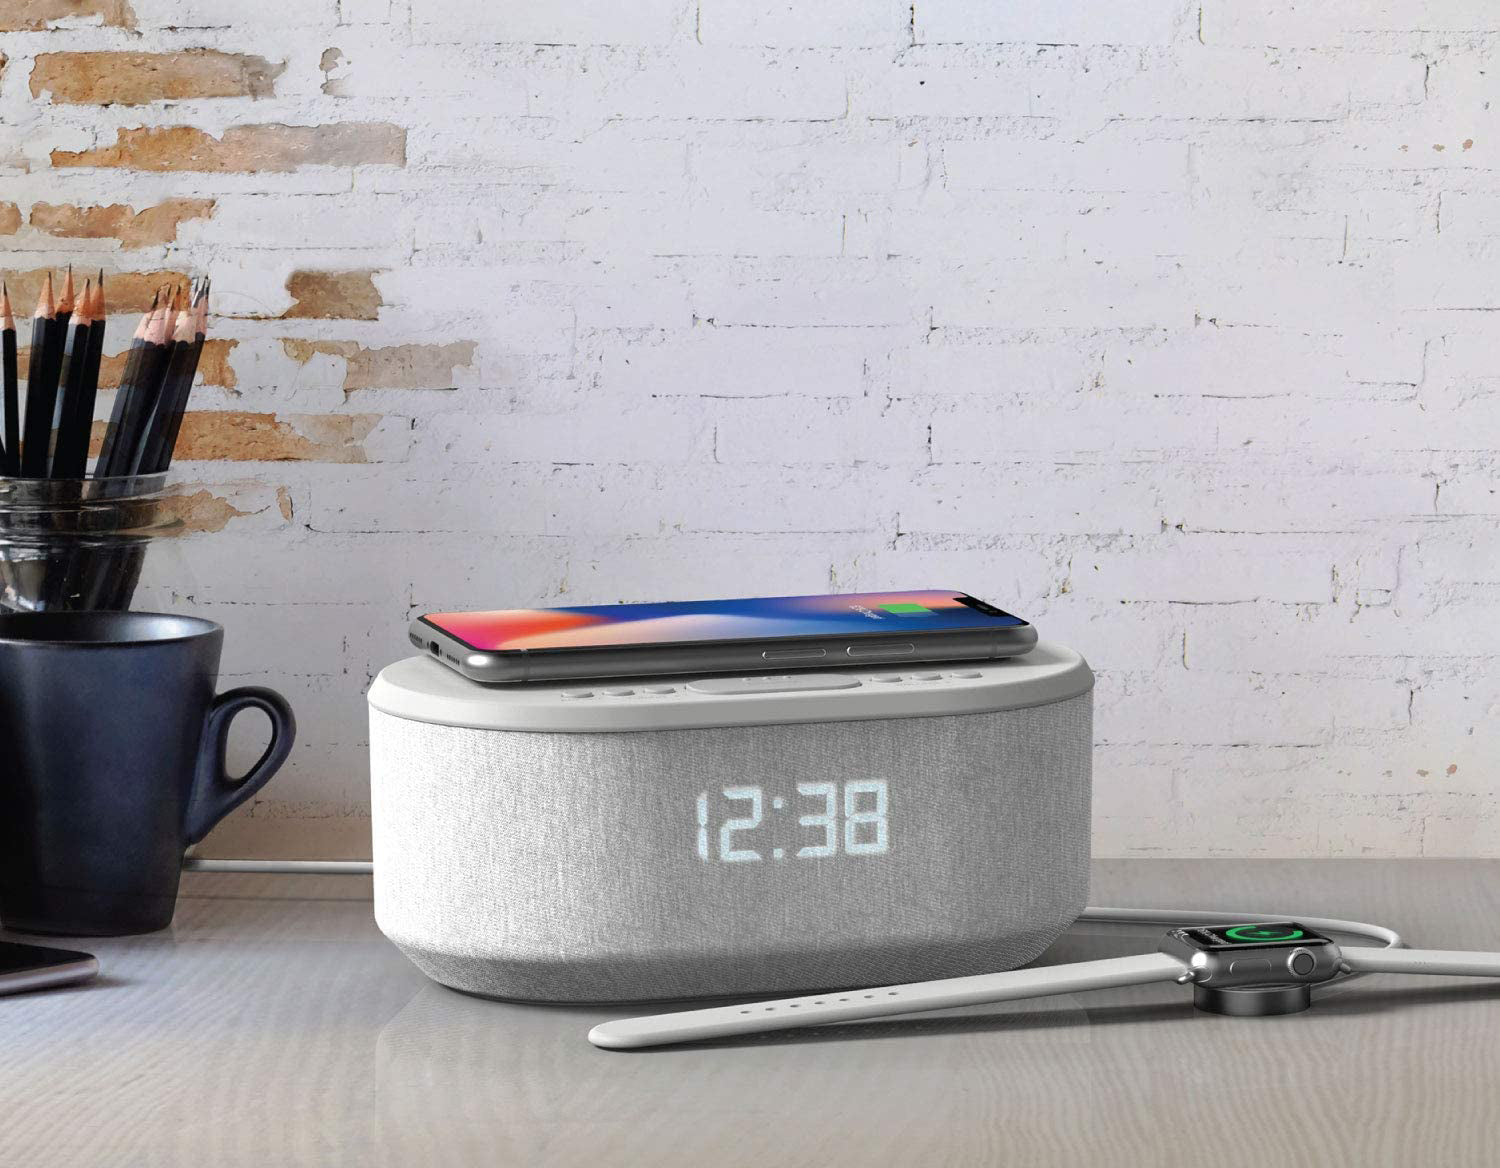 Boldnine blog : All in one clock that makes your life more smart and minimalistic.